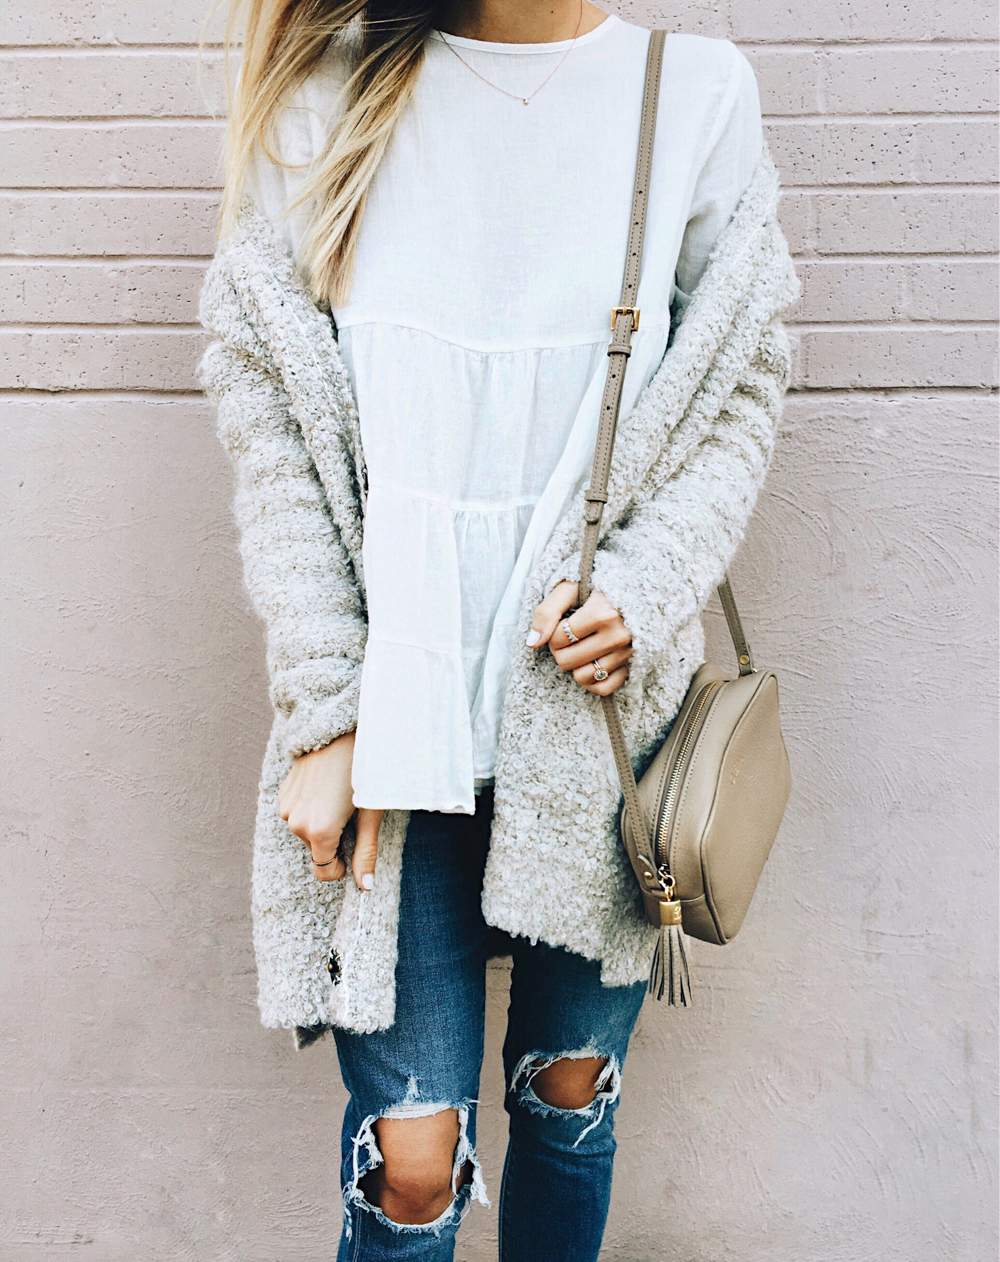 livvyland-blog-olivia-watson-instagram-roundup-sincerely-jules-white-tiered-babydoll-top-cozy-cardigan-layers-monochromatic